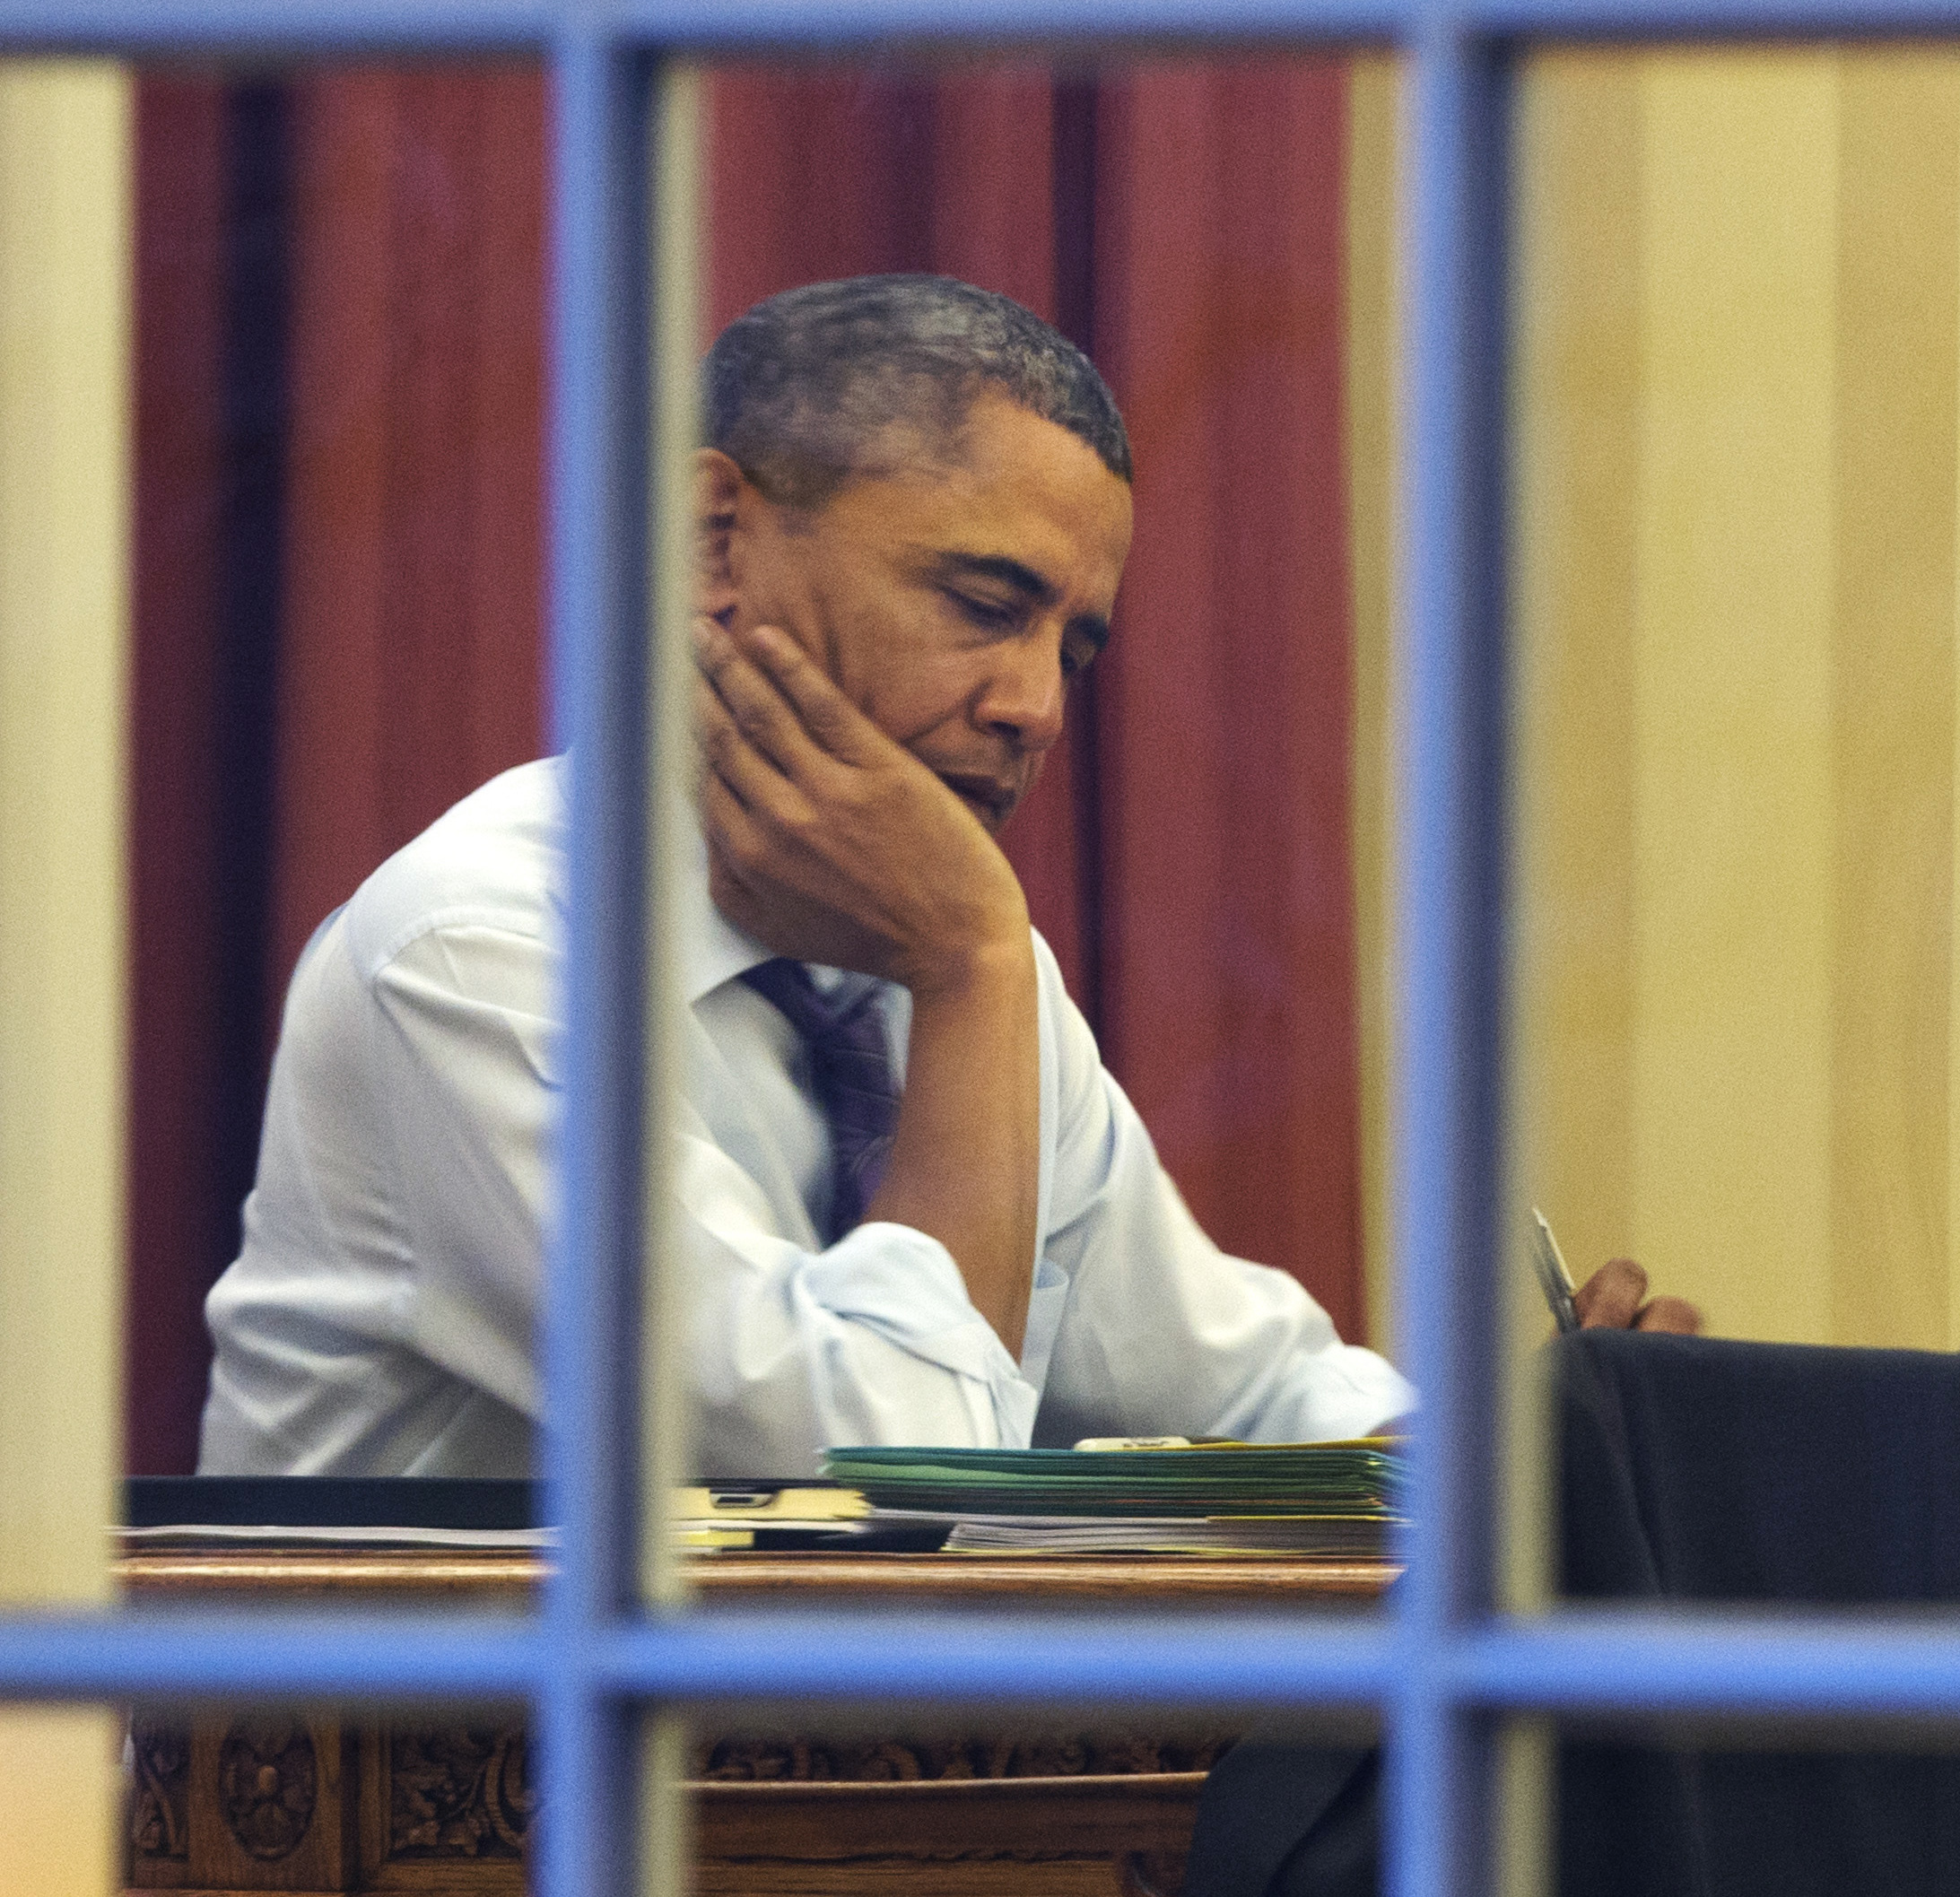 Obama To Raise Minimum Wage For Federal Contracts